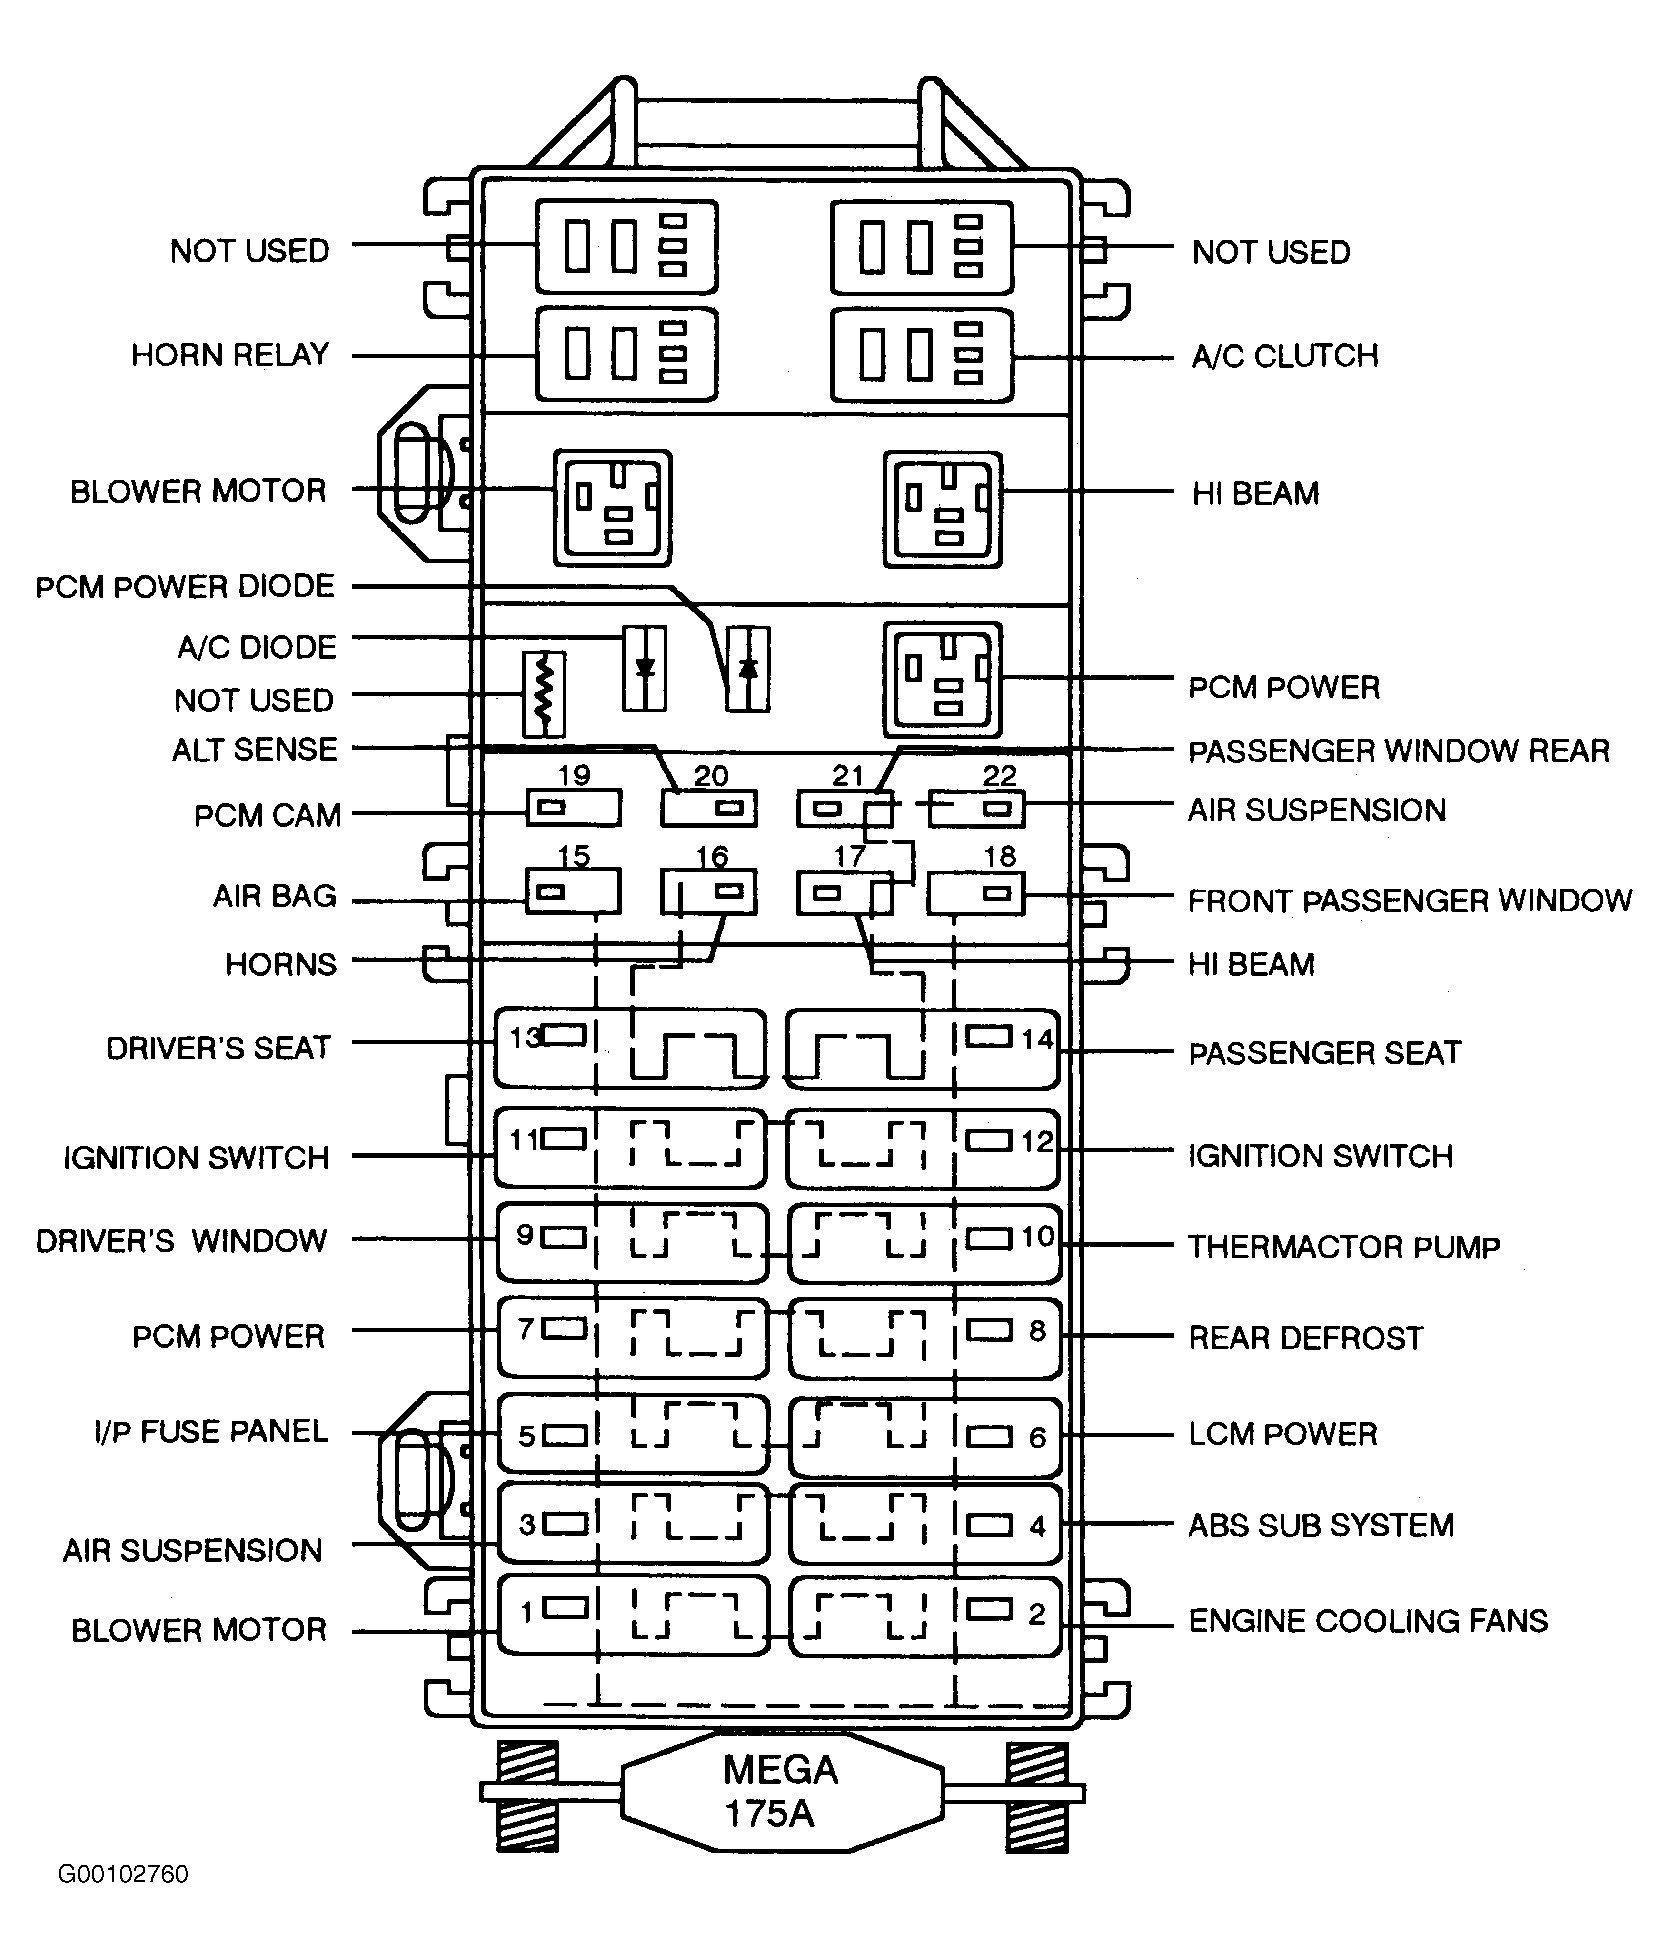 hight resolution of 1998 lincoln navigator fuse panel diagram wiring diagram used 2000 mercury sable fuse panel diagram